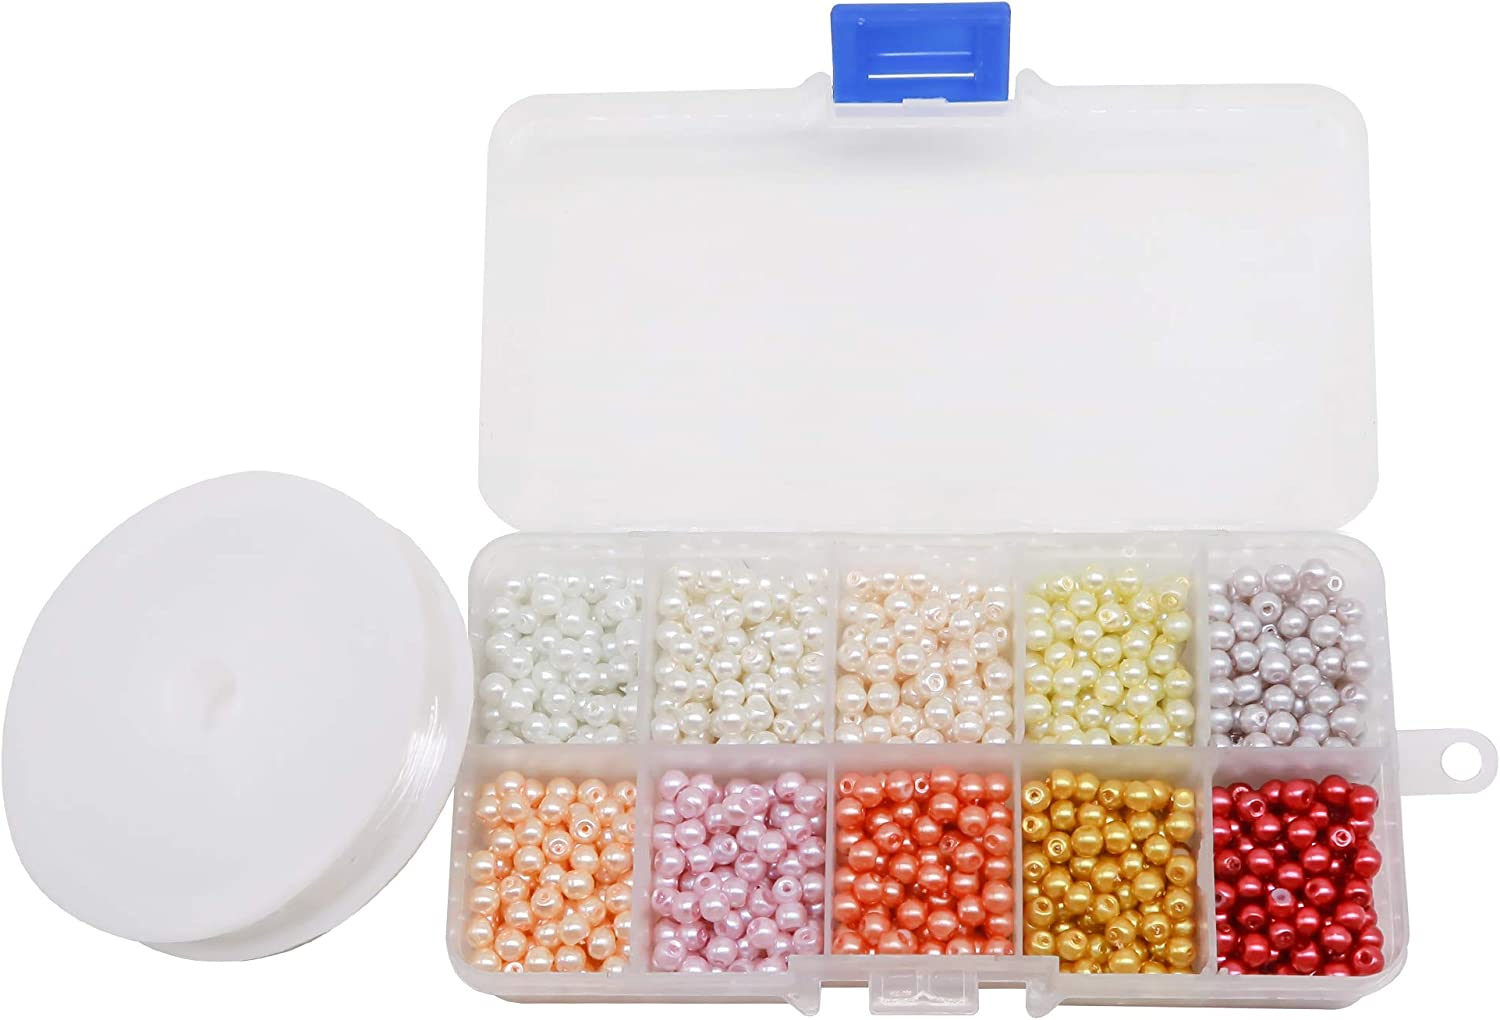 TOAOB 1000pcs 4mm Multicoloured Round Glass Pearl Beads Coloured Faux Tiny Pearl Beads for Jewelry Making Decoration Necklace Earrings with Box and Flex Wire